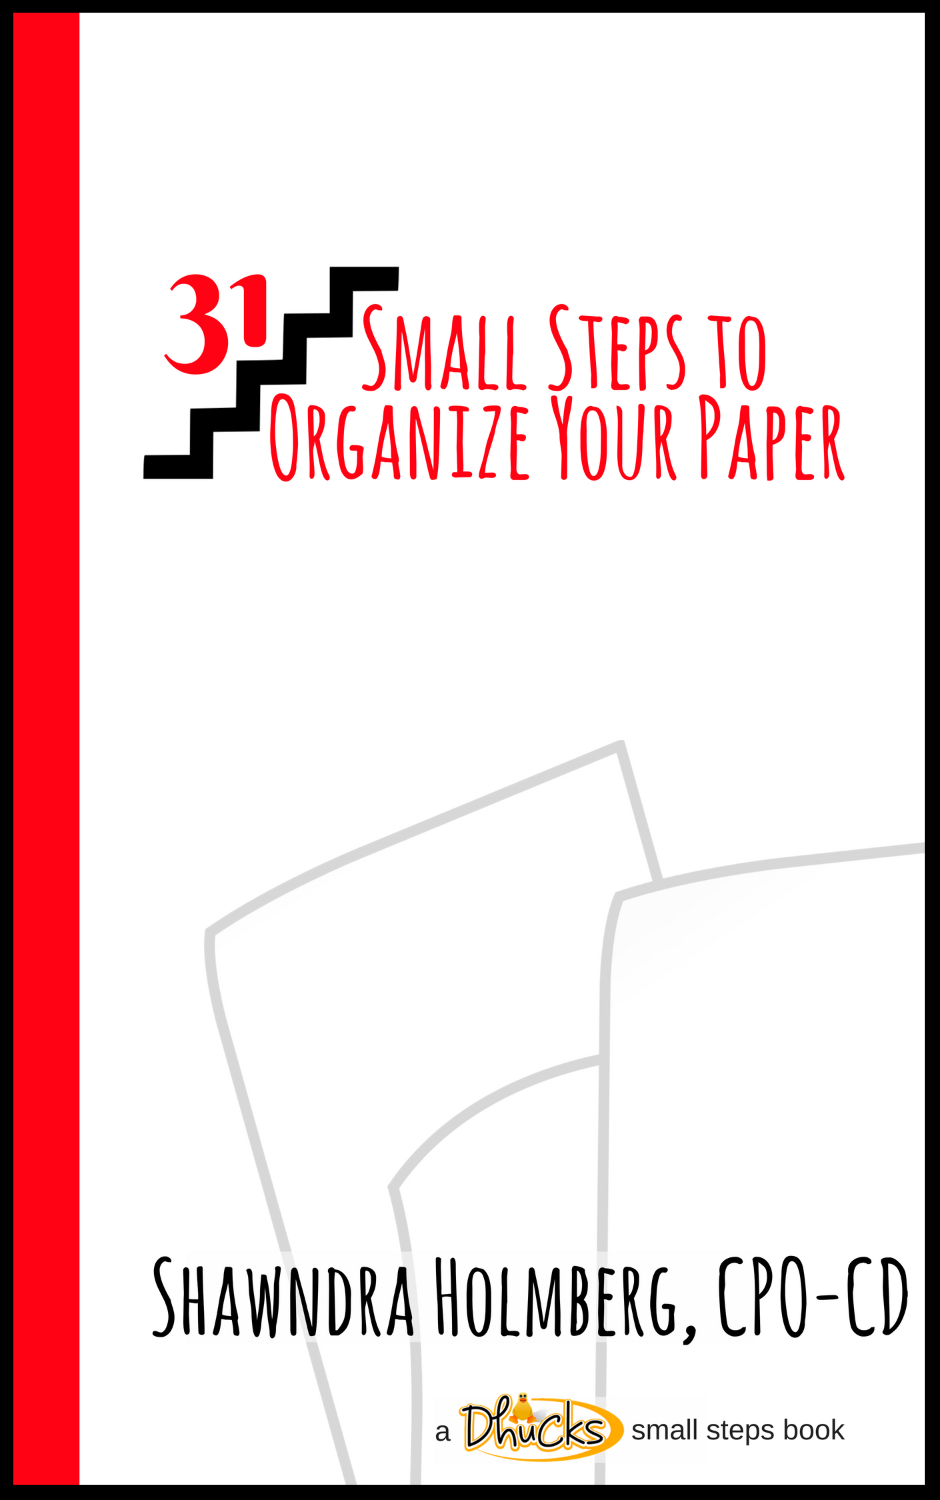 31 Small Steps to Organize Your Paper - Kindle edition book cover